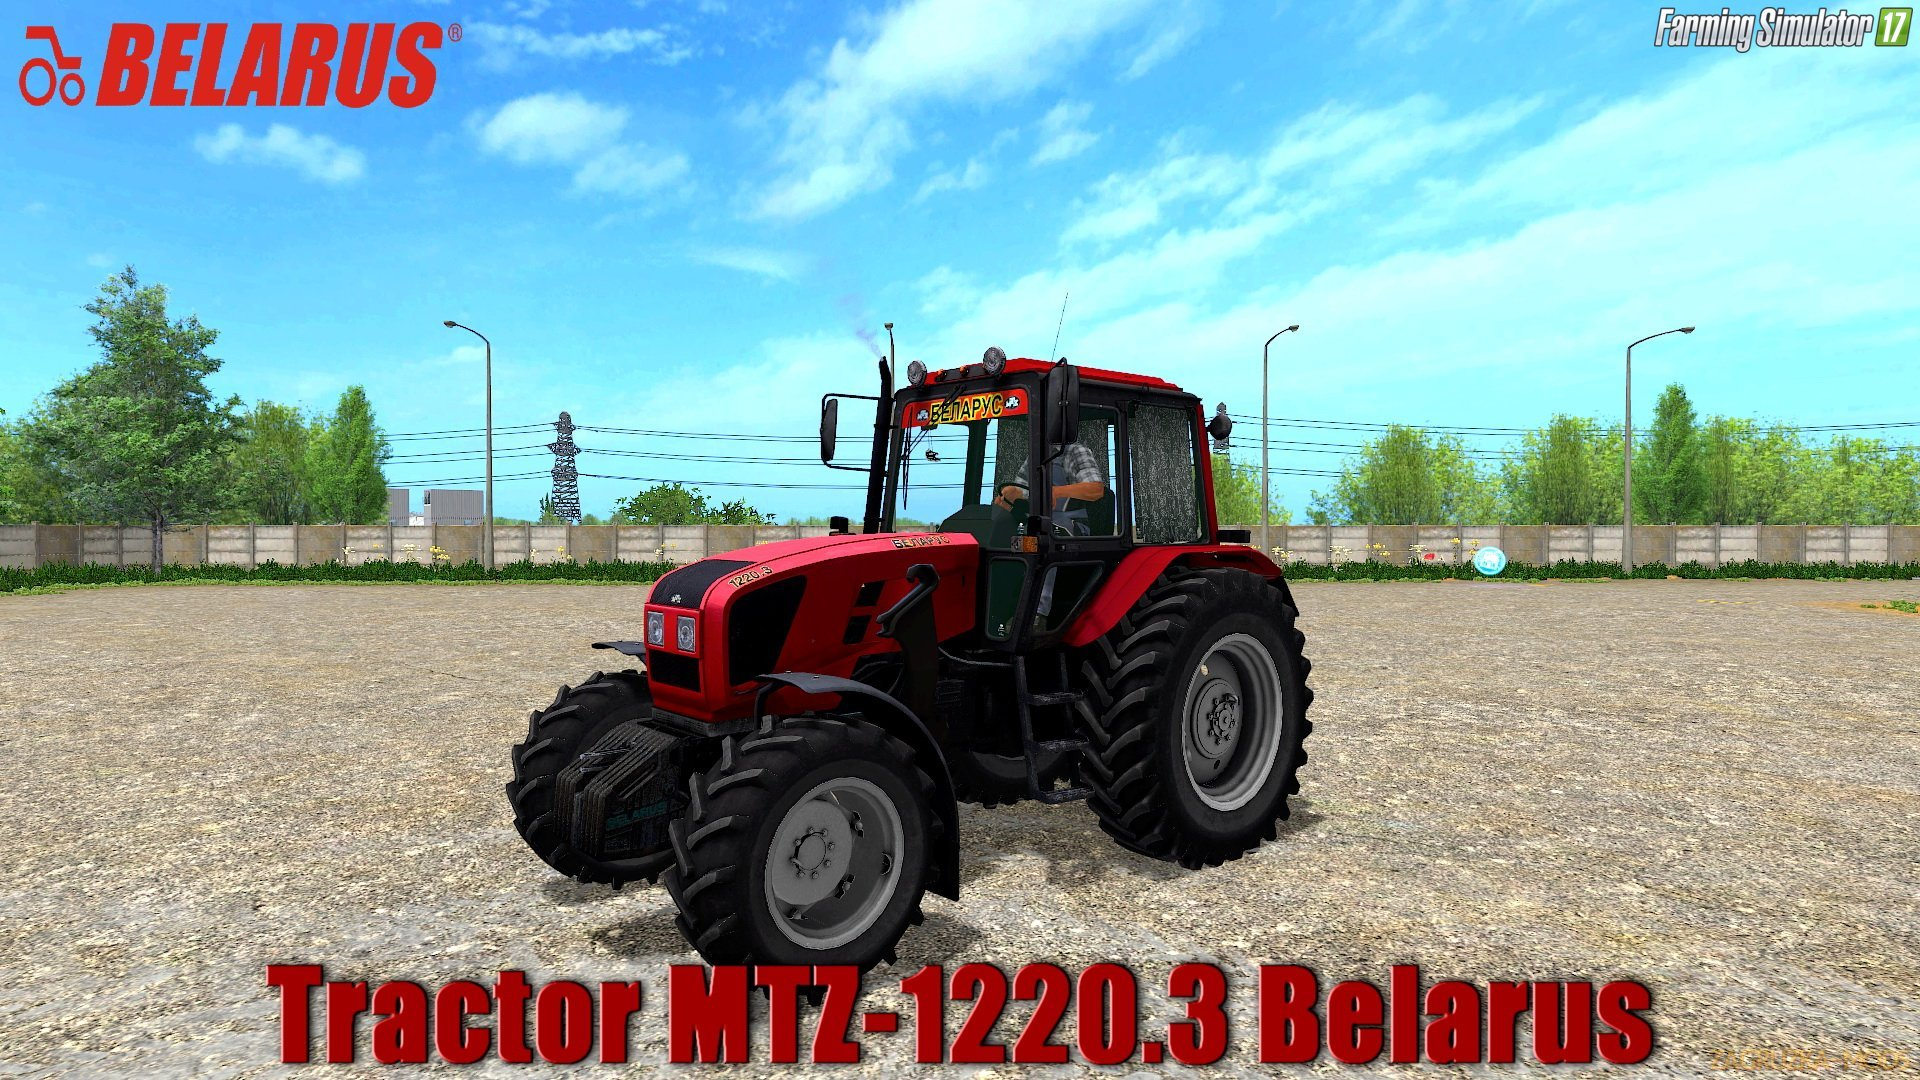 MTZ-1220.3 Belarus v2.1 for FS 17